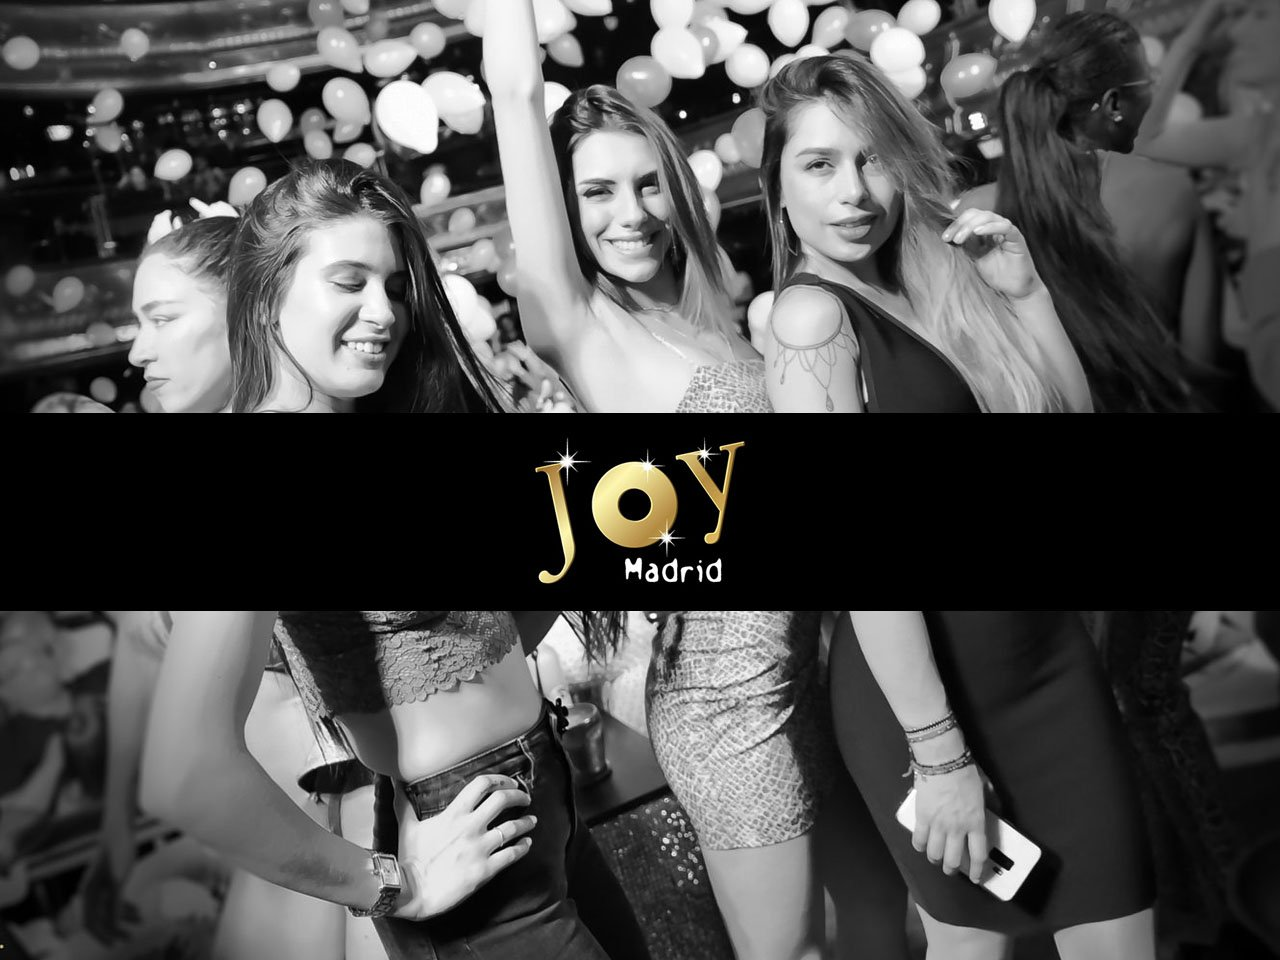 Joy Madrid